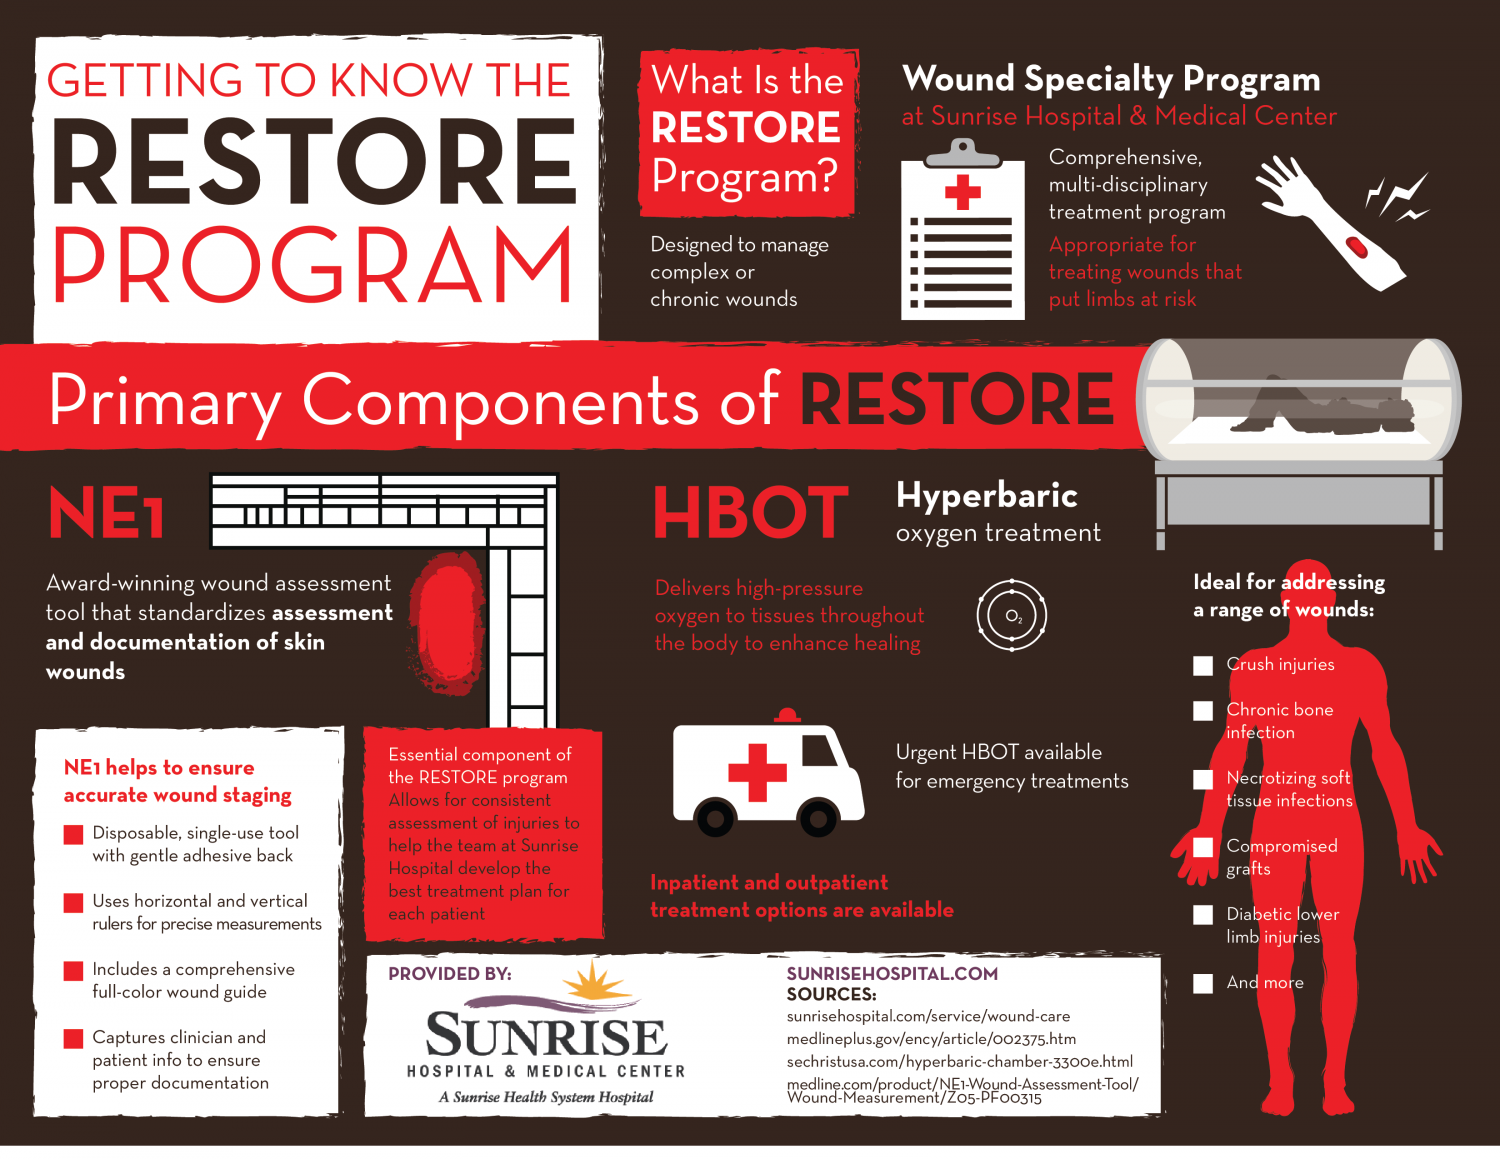 Getting to Know the RESTORE Program Infographic